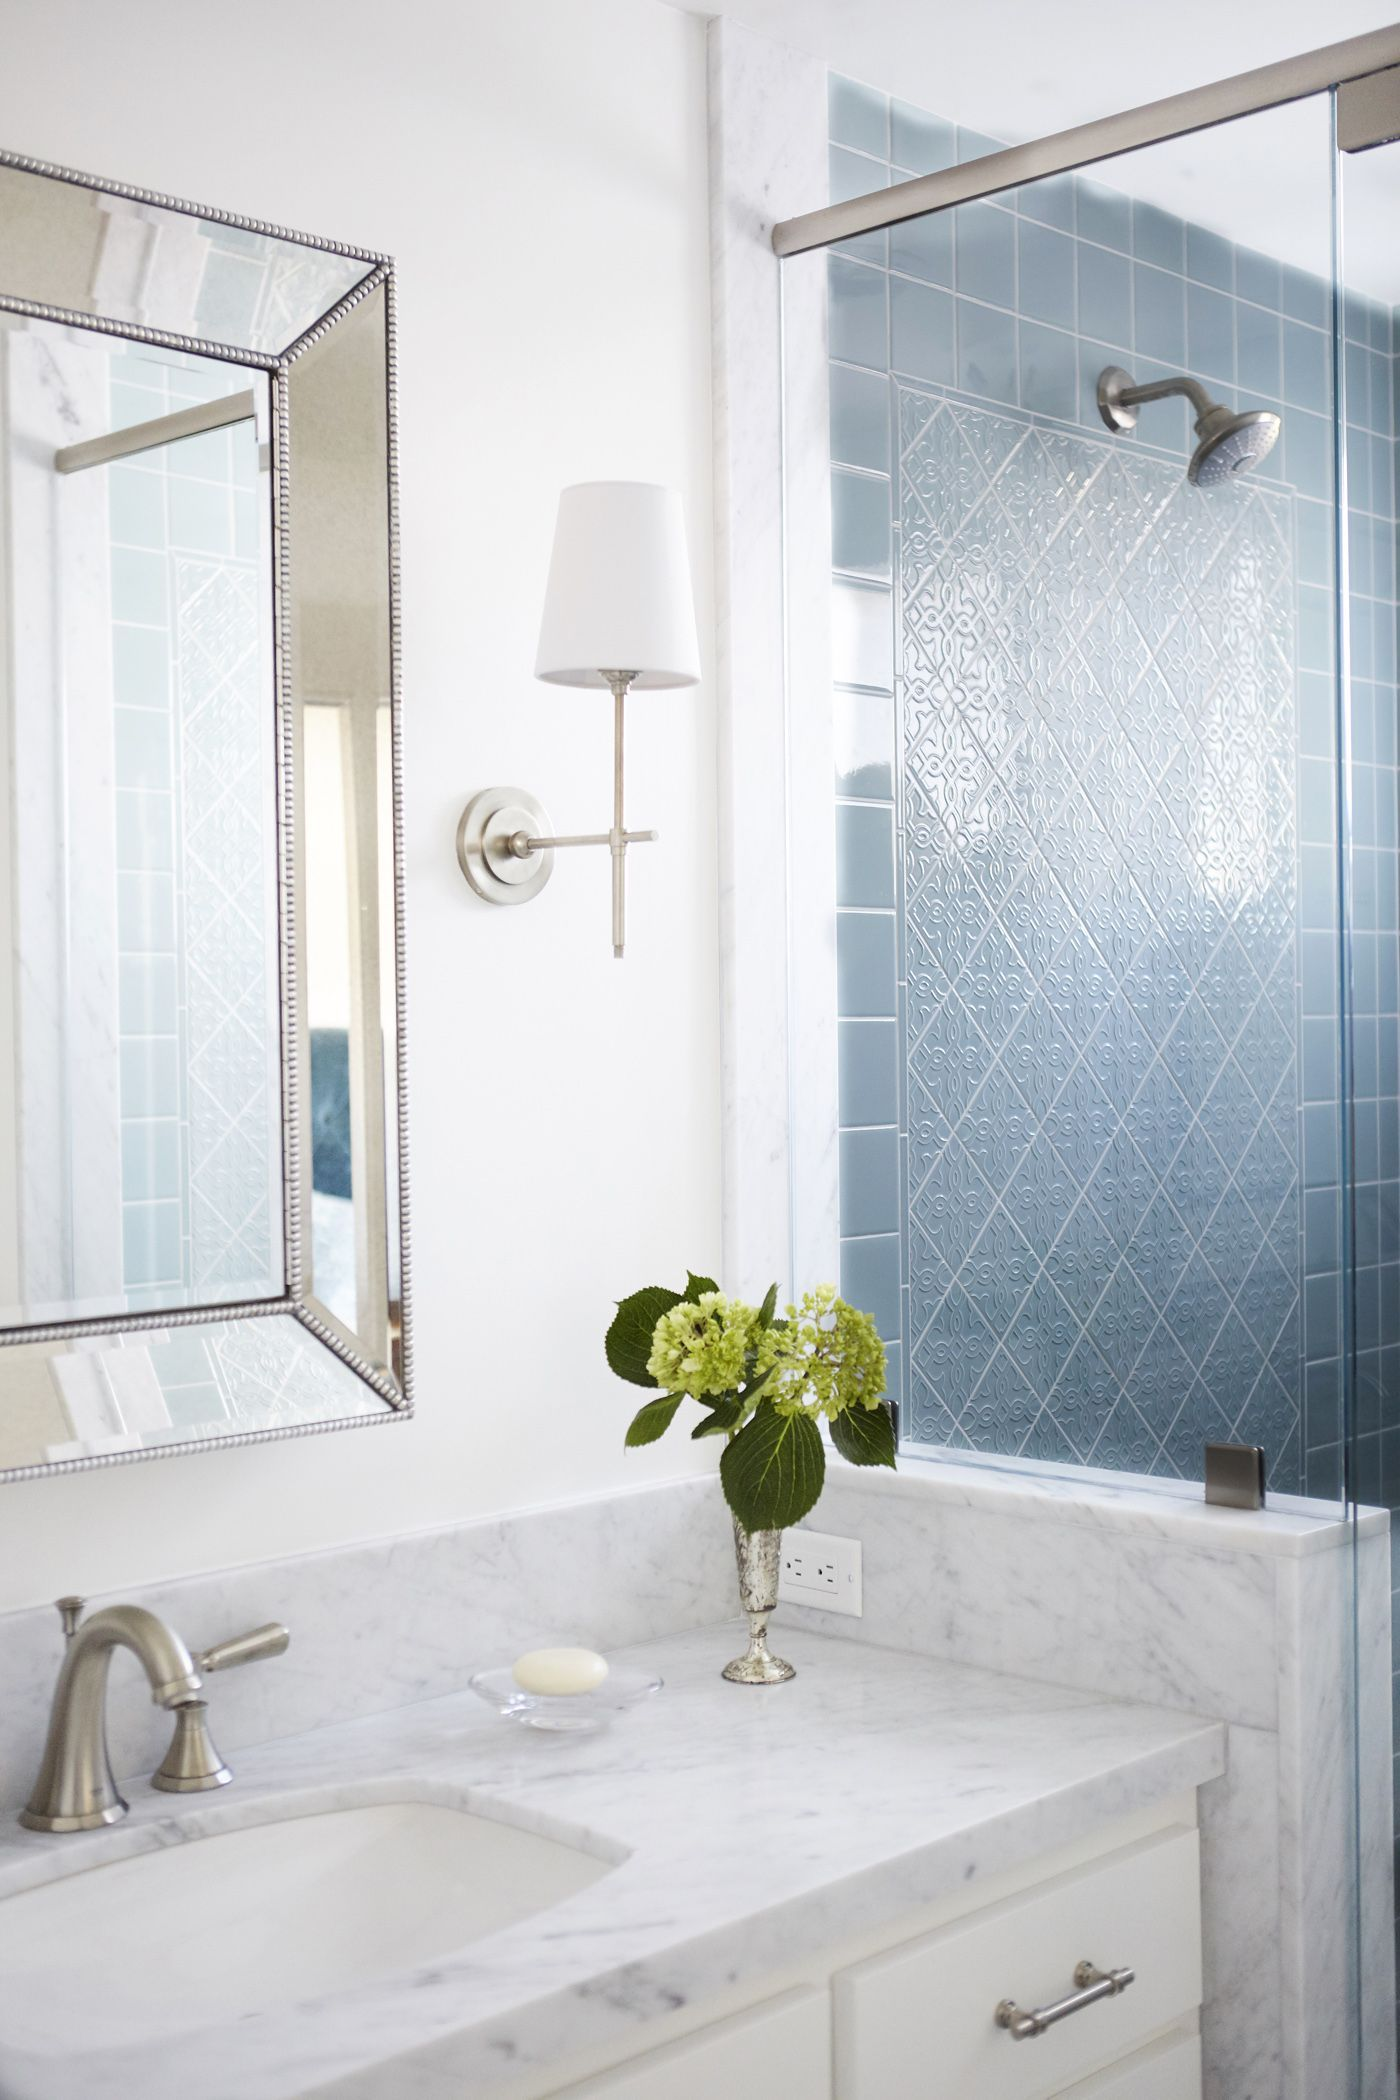 29 Bathrooms That Make Colorful Tile And Bold Patterns Work | Blue ...